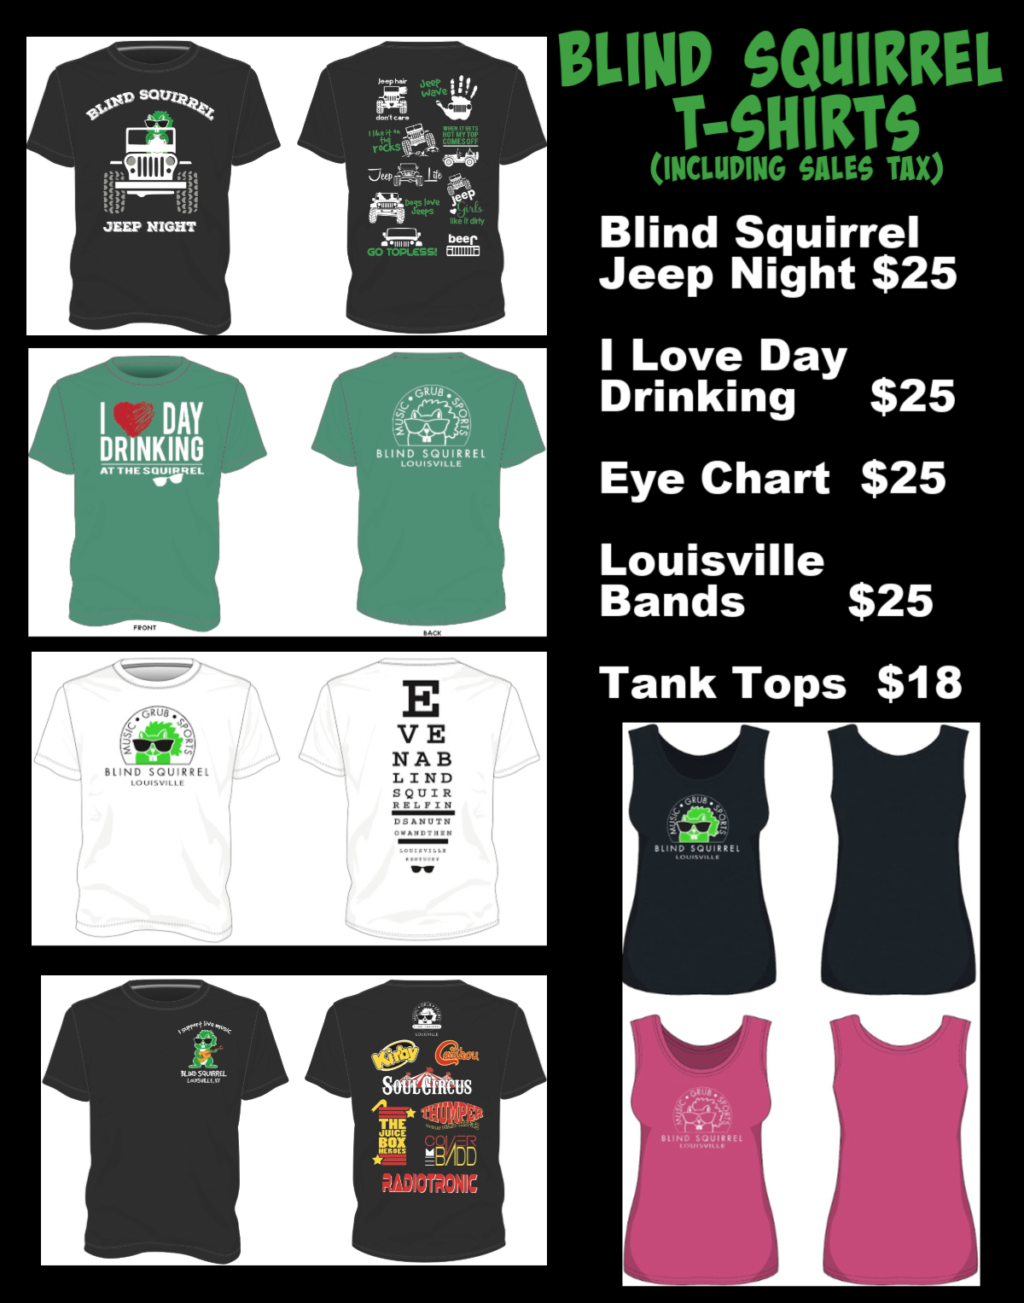 T-Shirts pricing list